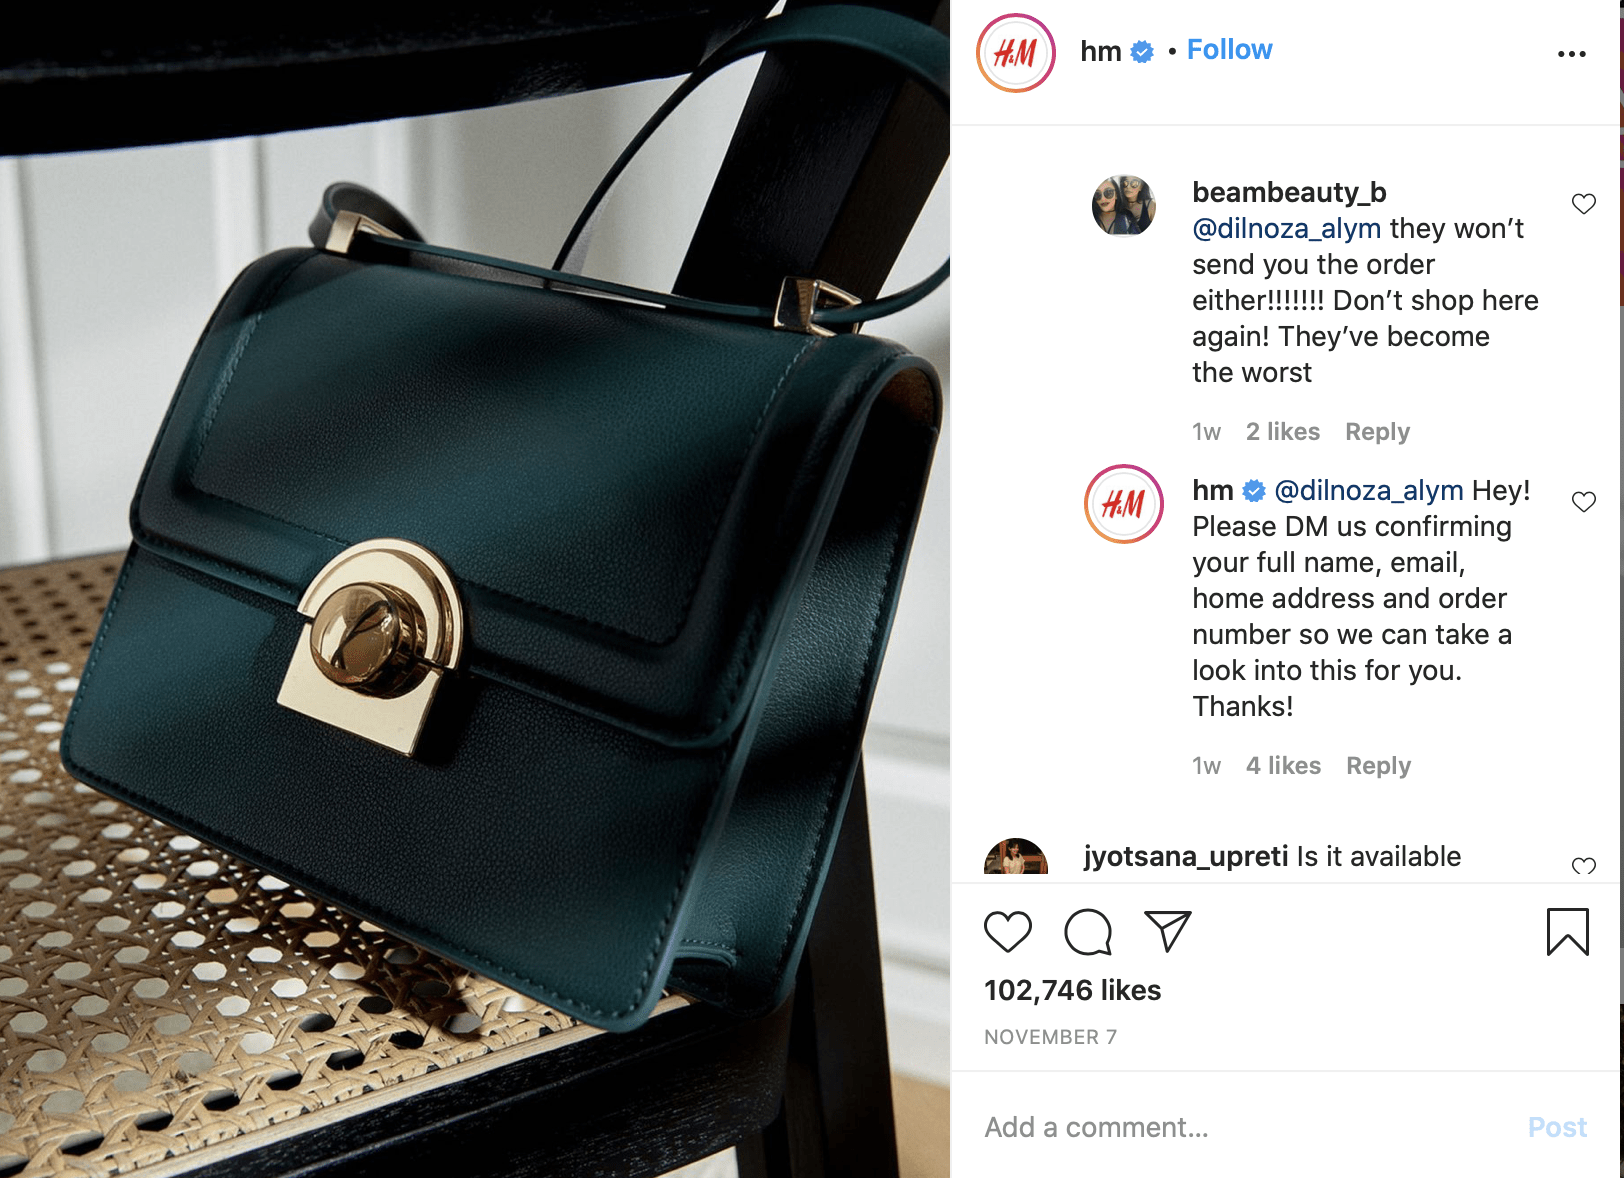 Another example of supporting customers on Instagram.